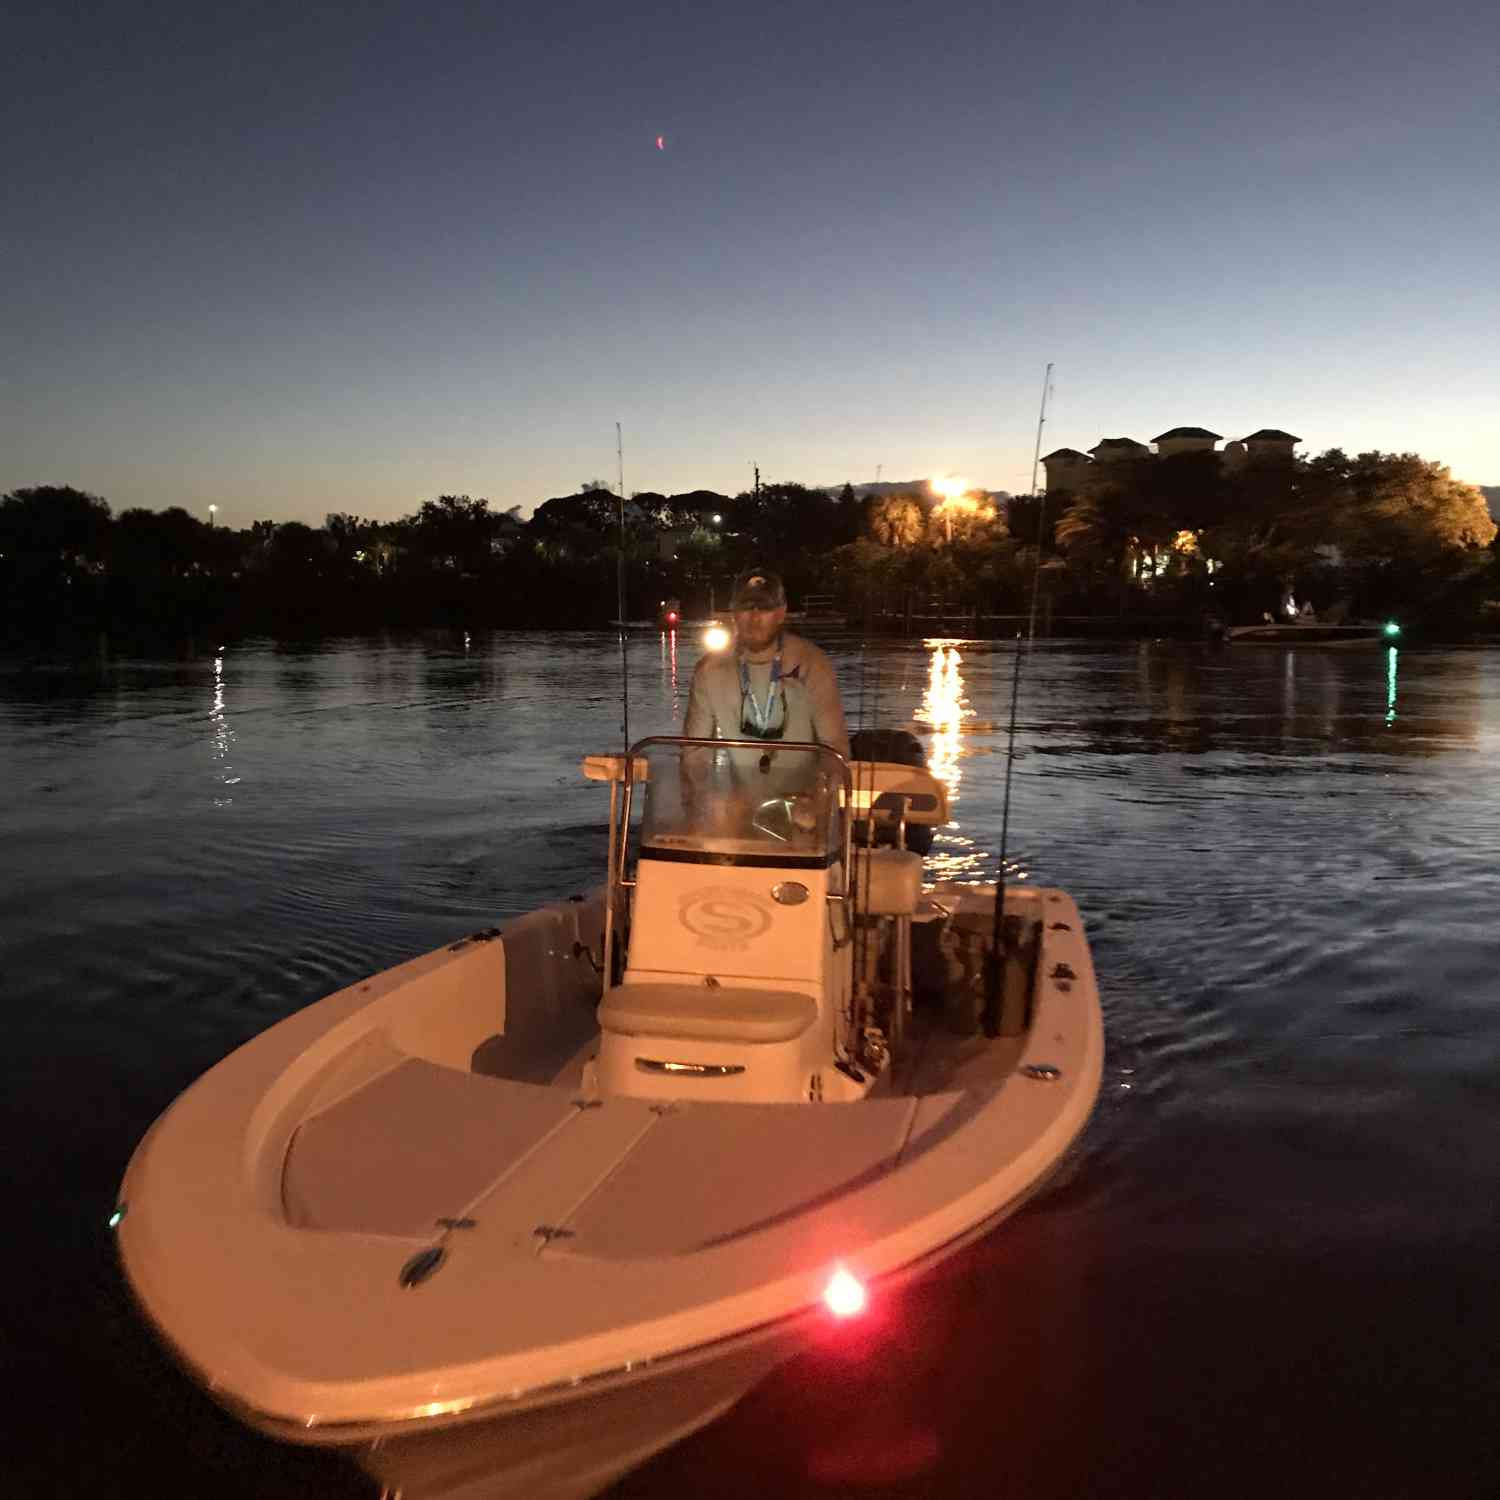 Title: Early morning - On board their Sportsman Island Bay 18 Bay Boat - Location: New Smyrna beach, Florida. Participating in the Photo Contest #SportsmanNovember2018